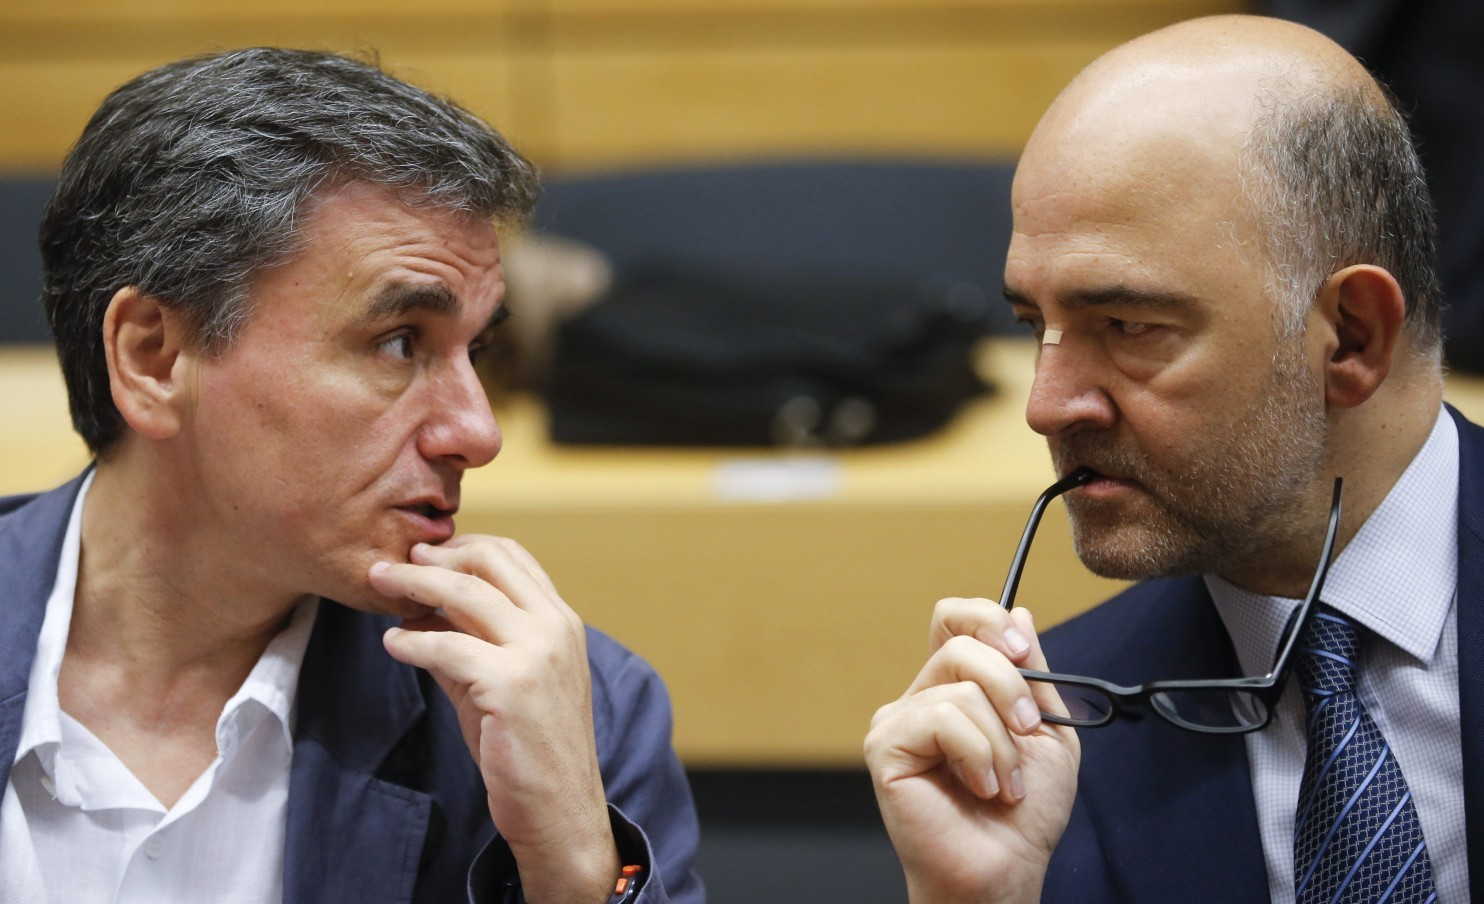 Greek Finance Minister Euclid Tsakalotos talks to European Economic and Financial Affairs Commissioner Pierre Mocovici (R) during a euro zone finance ministers meeting in Brussels, Belgium, July 12, 2015.